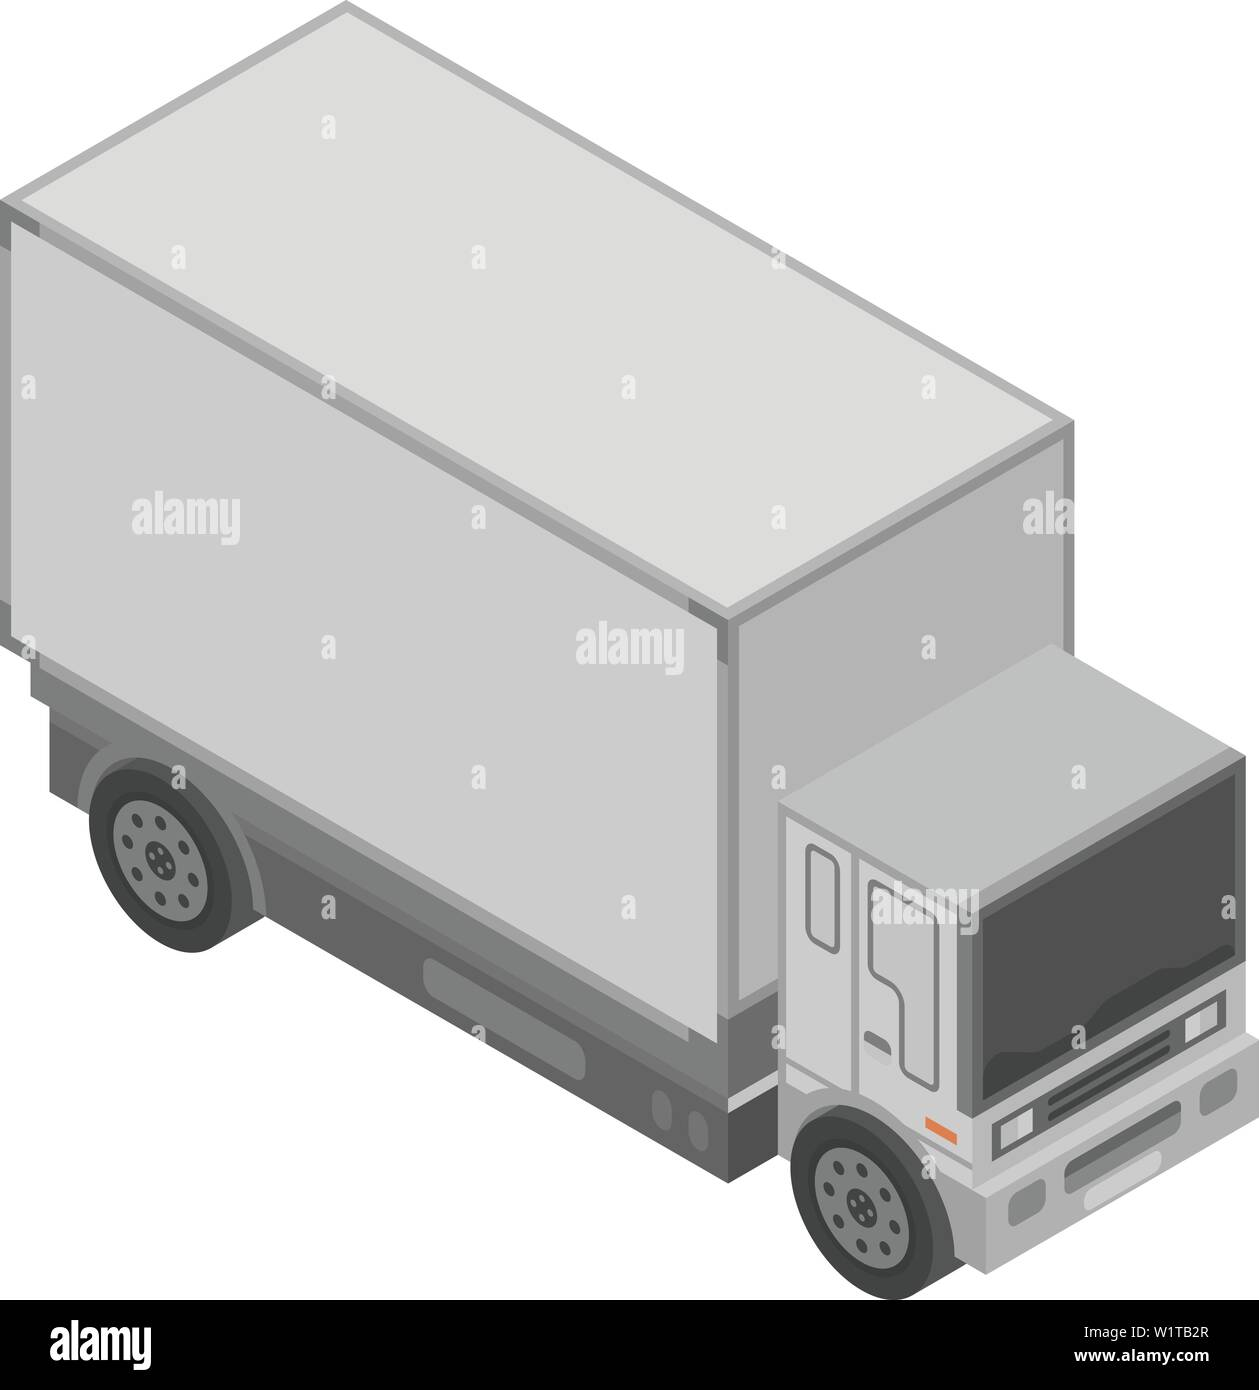 Delivery truck icon, isometric style - Stock Image